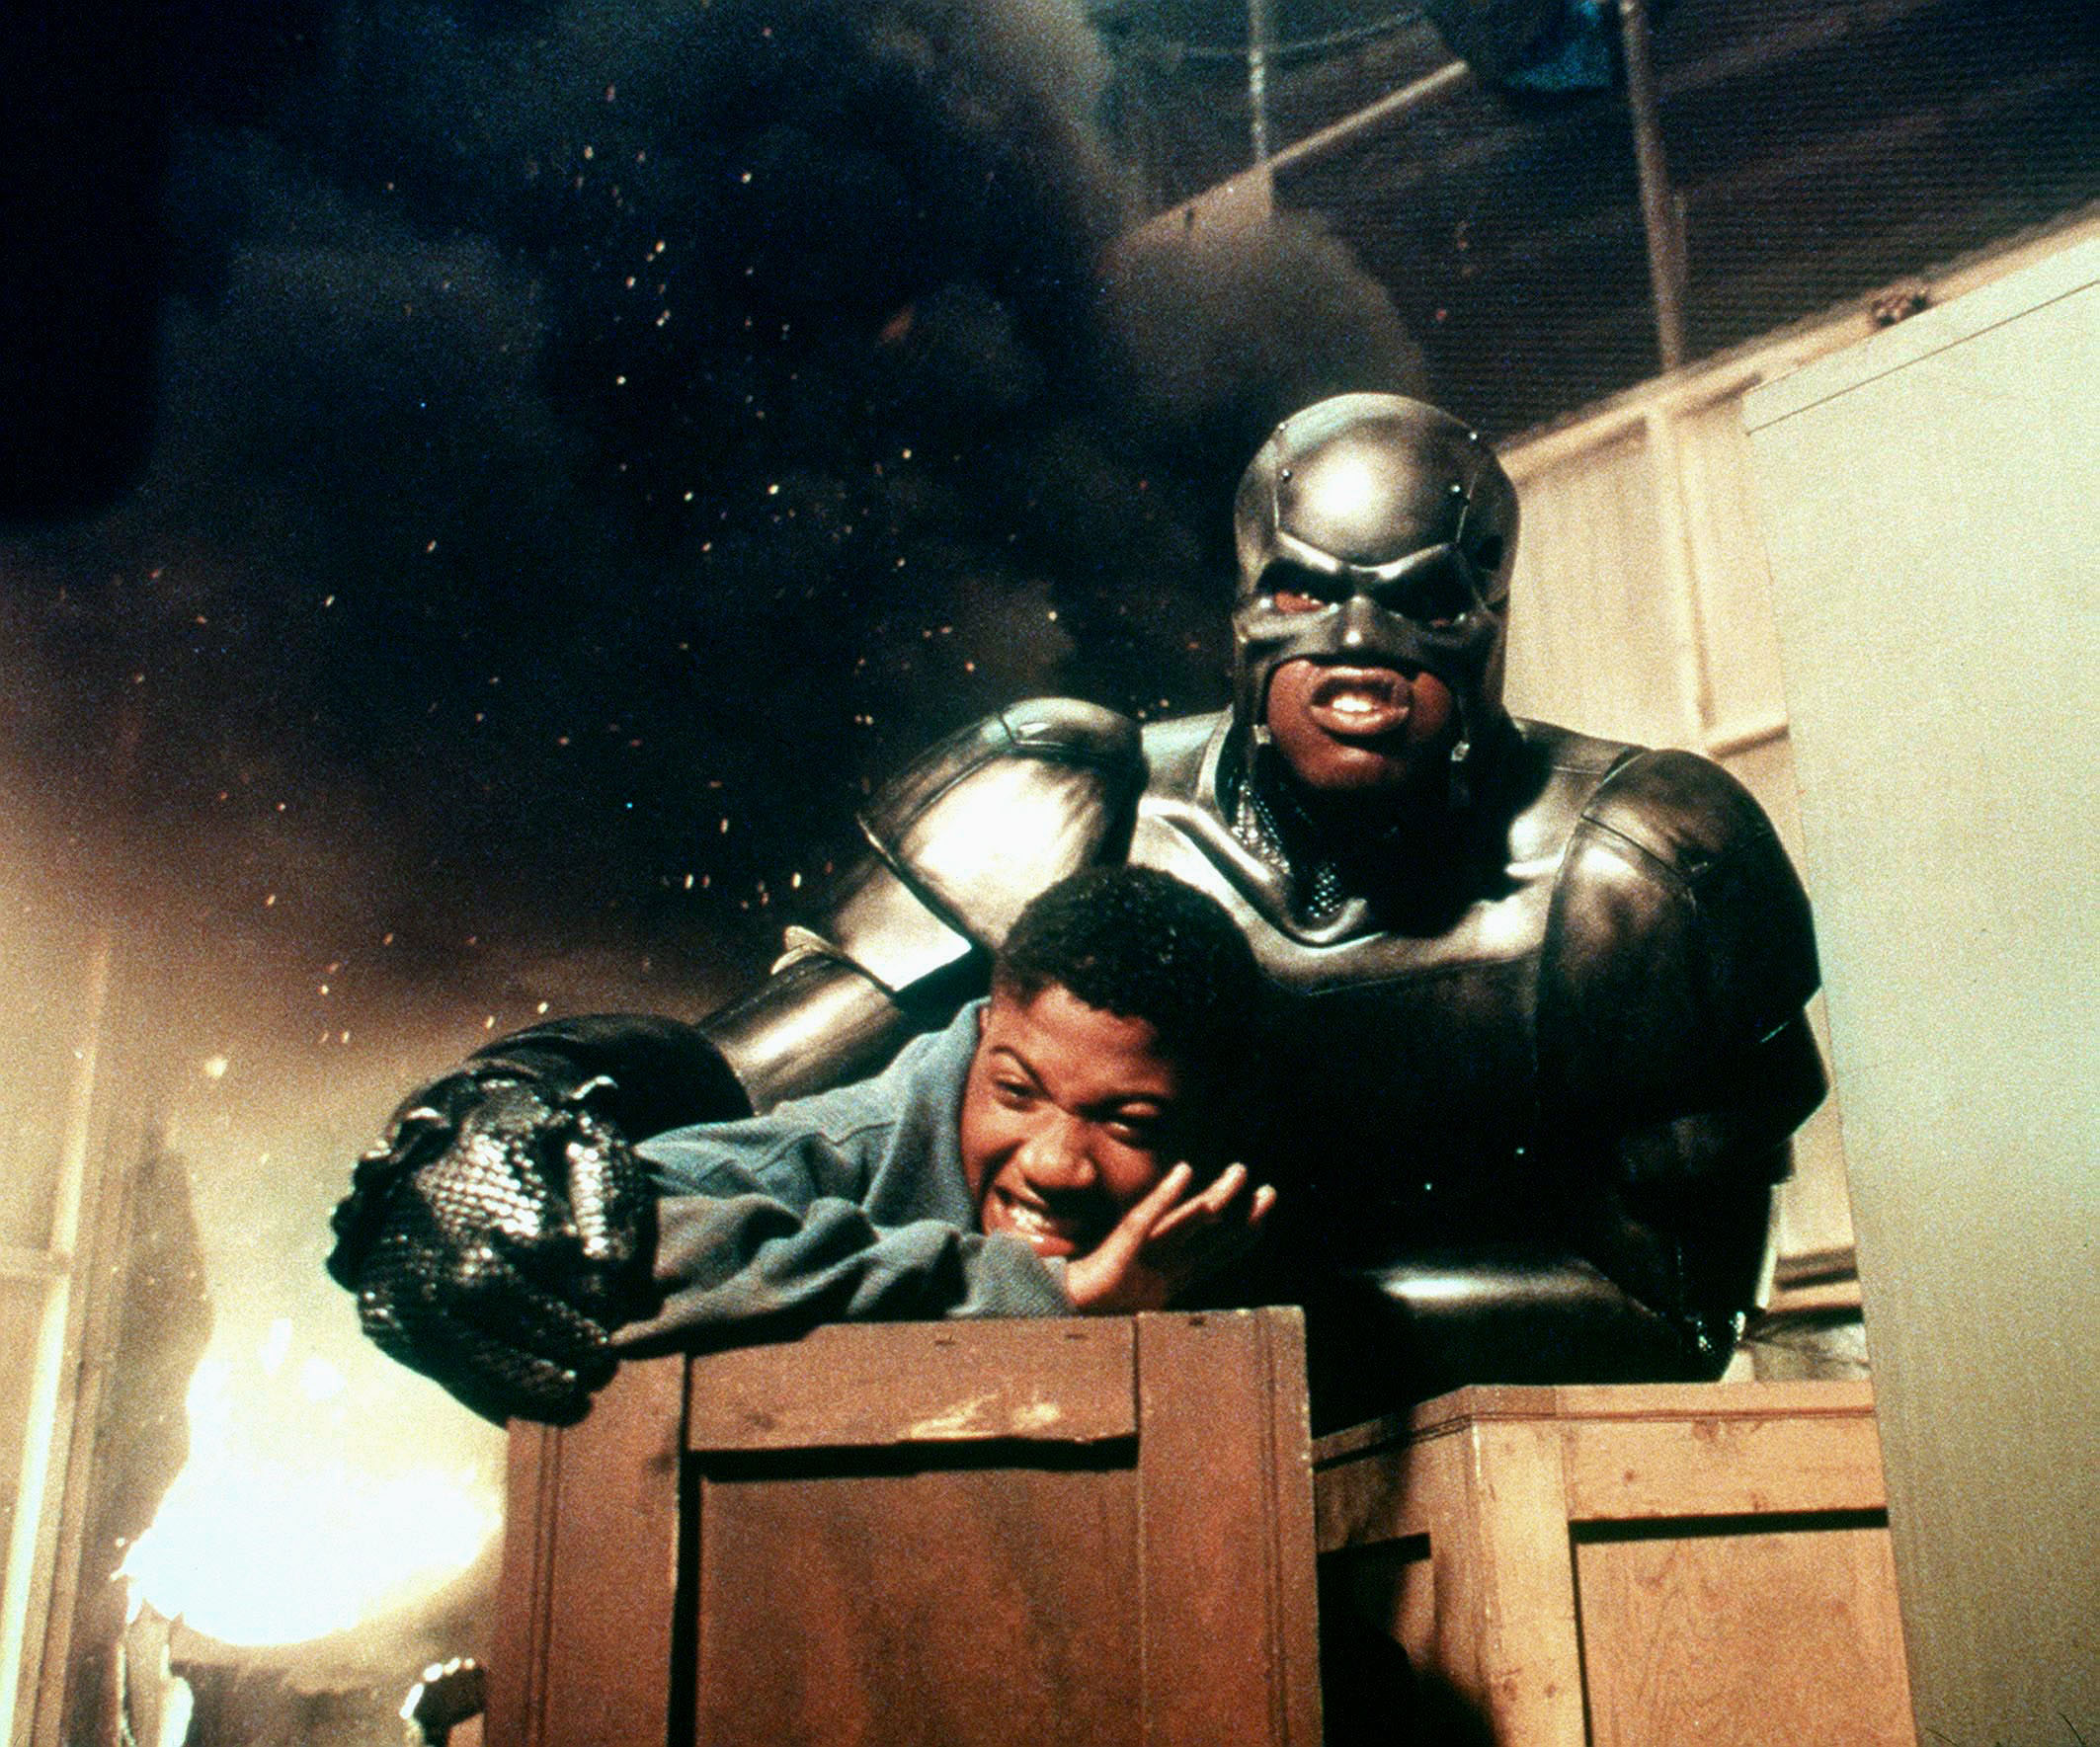 SHAQUILLE O'NEAL & RAY J IN STEEL (1997)